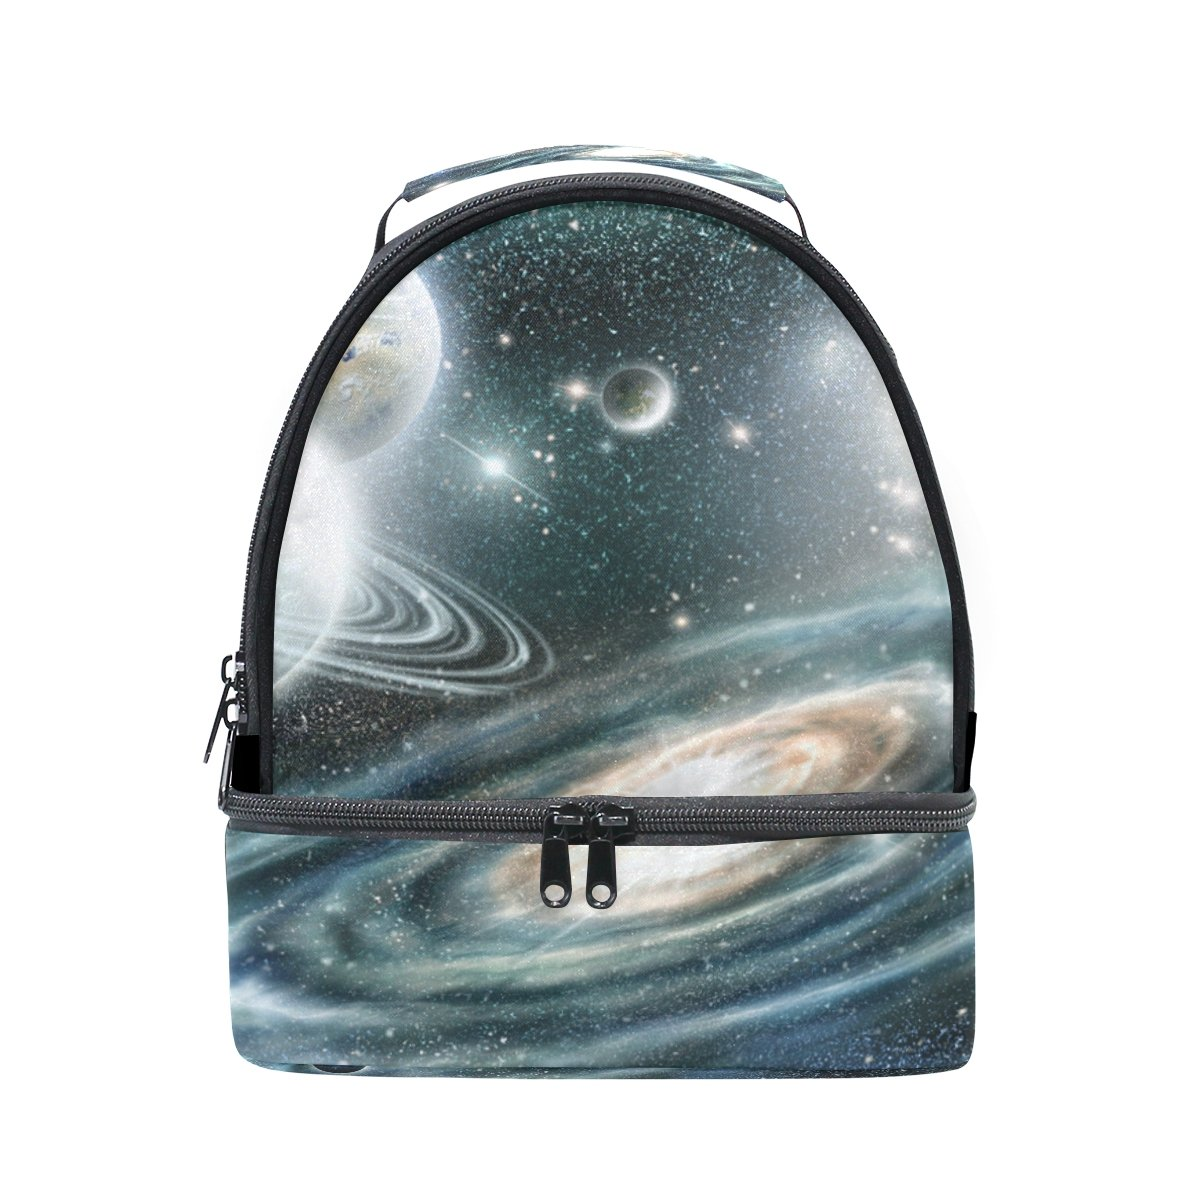 ALAZA Solar System Spiral Galaxy Planet Portable Shoulder Double Lunch Box Bag Insulated Lunch Tote Outdoor Bag